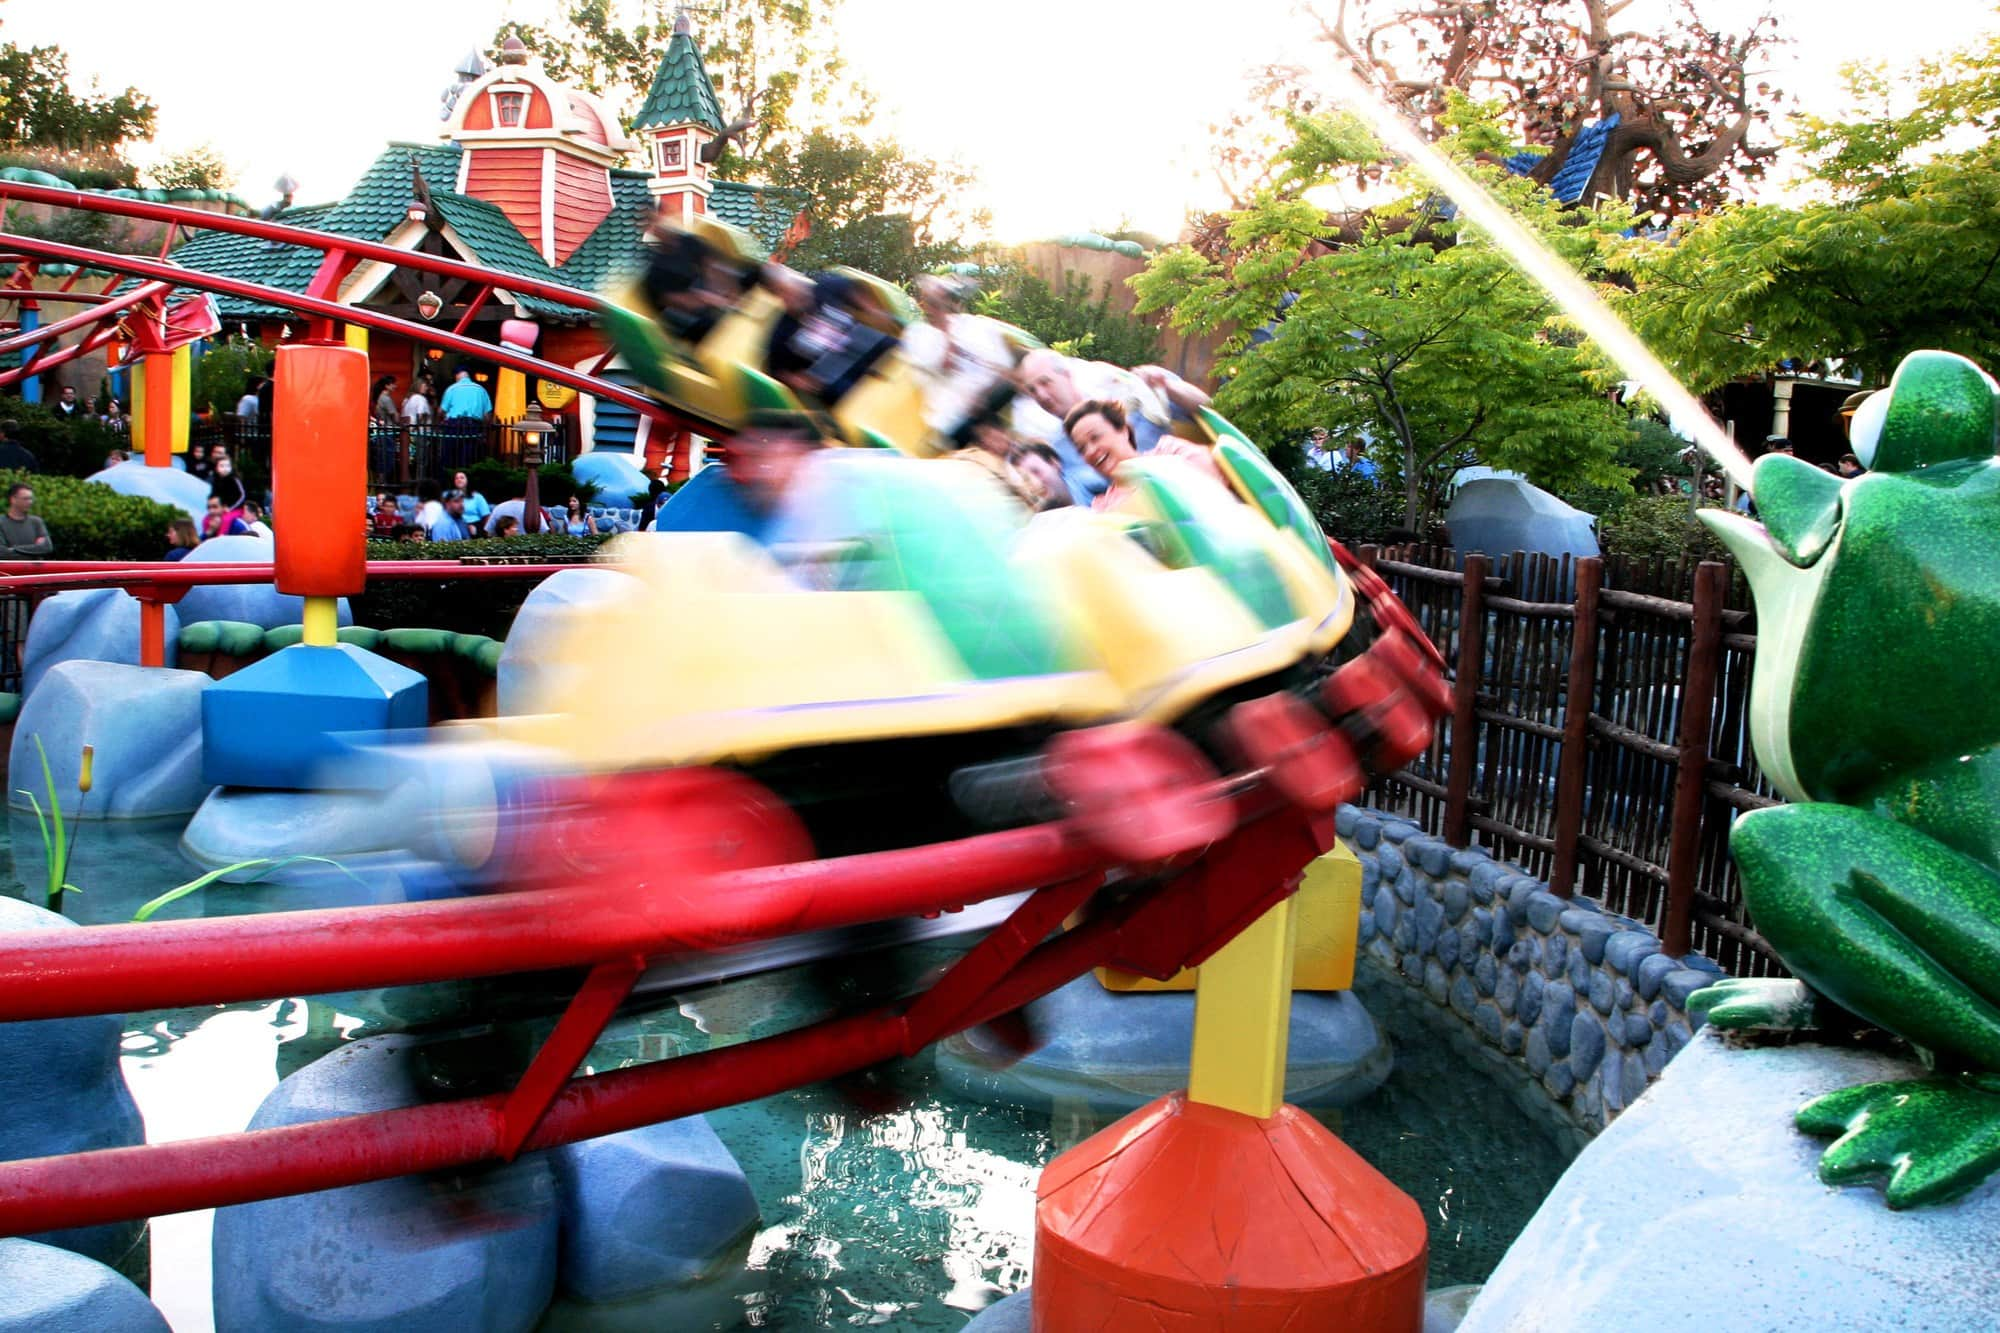 Gadget's Go Coater is a good starter roller coaster ~ Scariest Rides at Disneyland